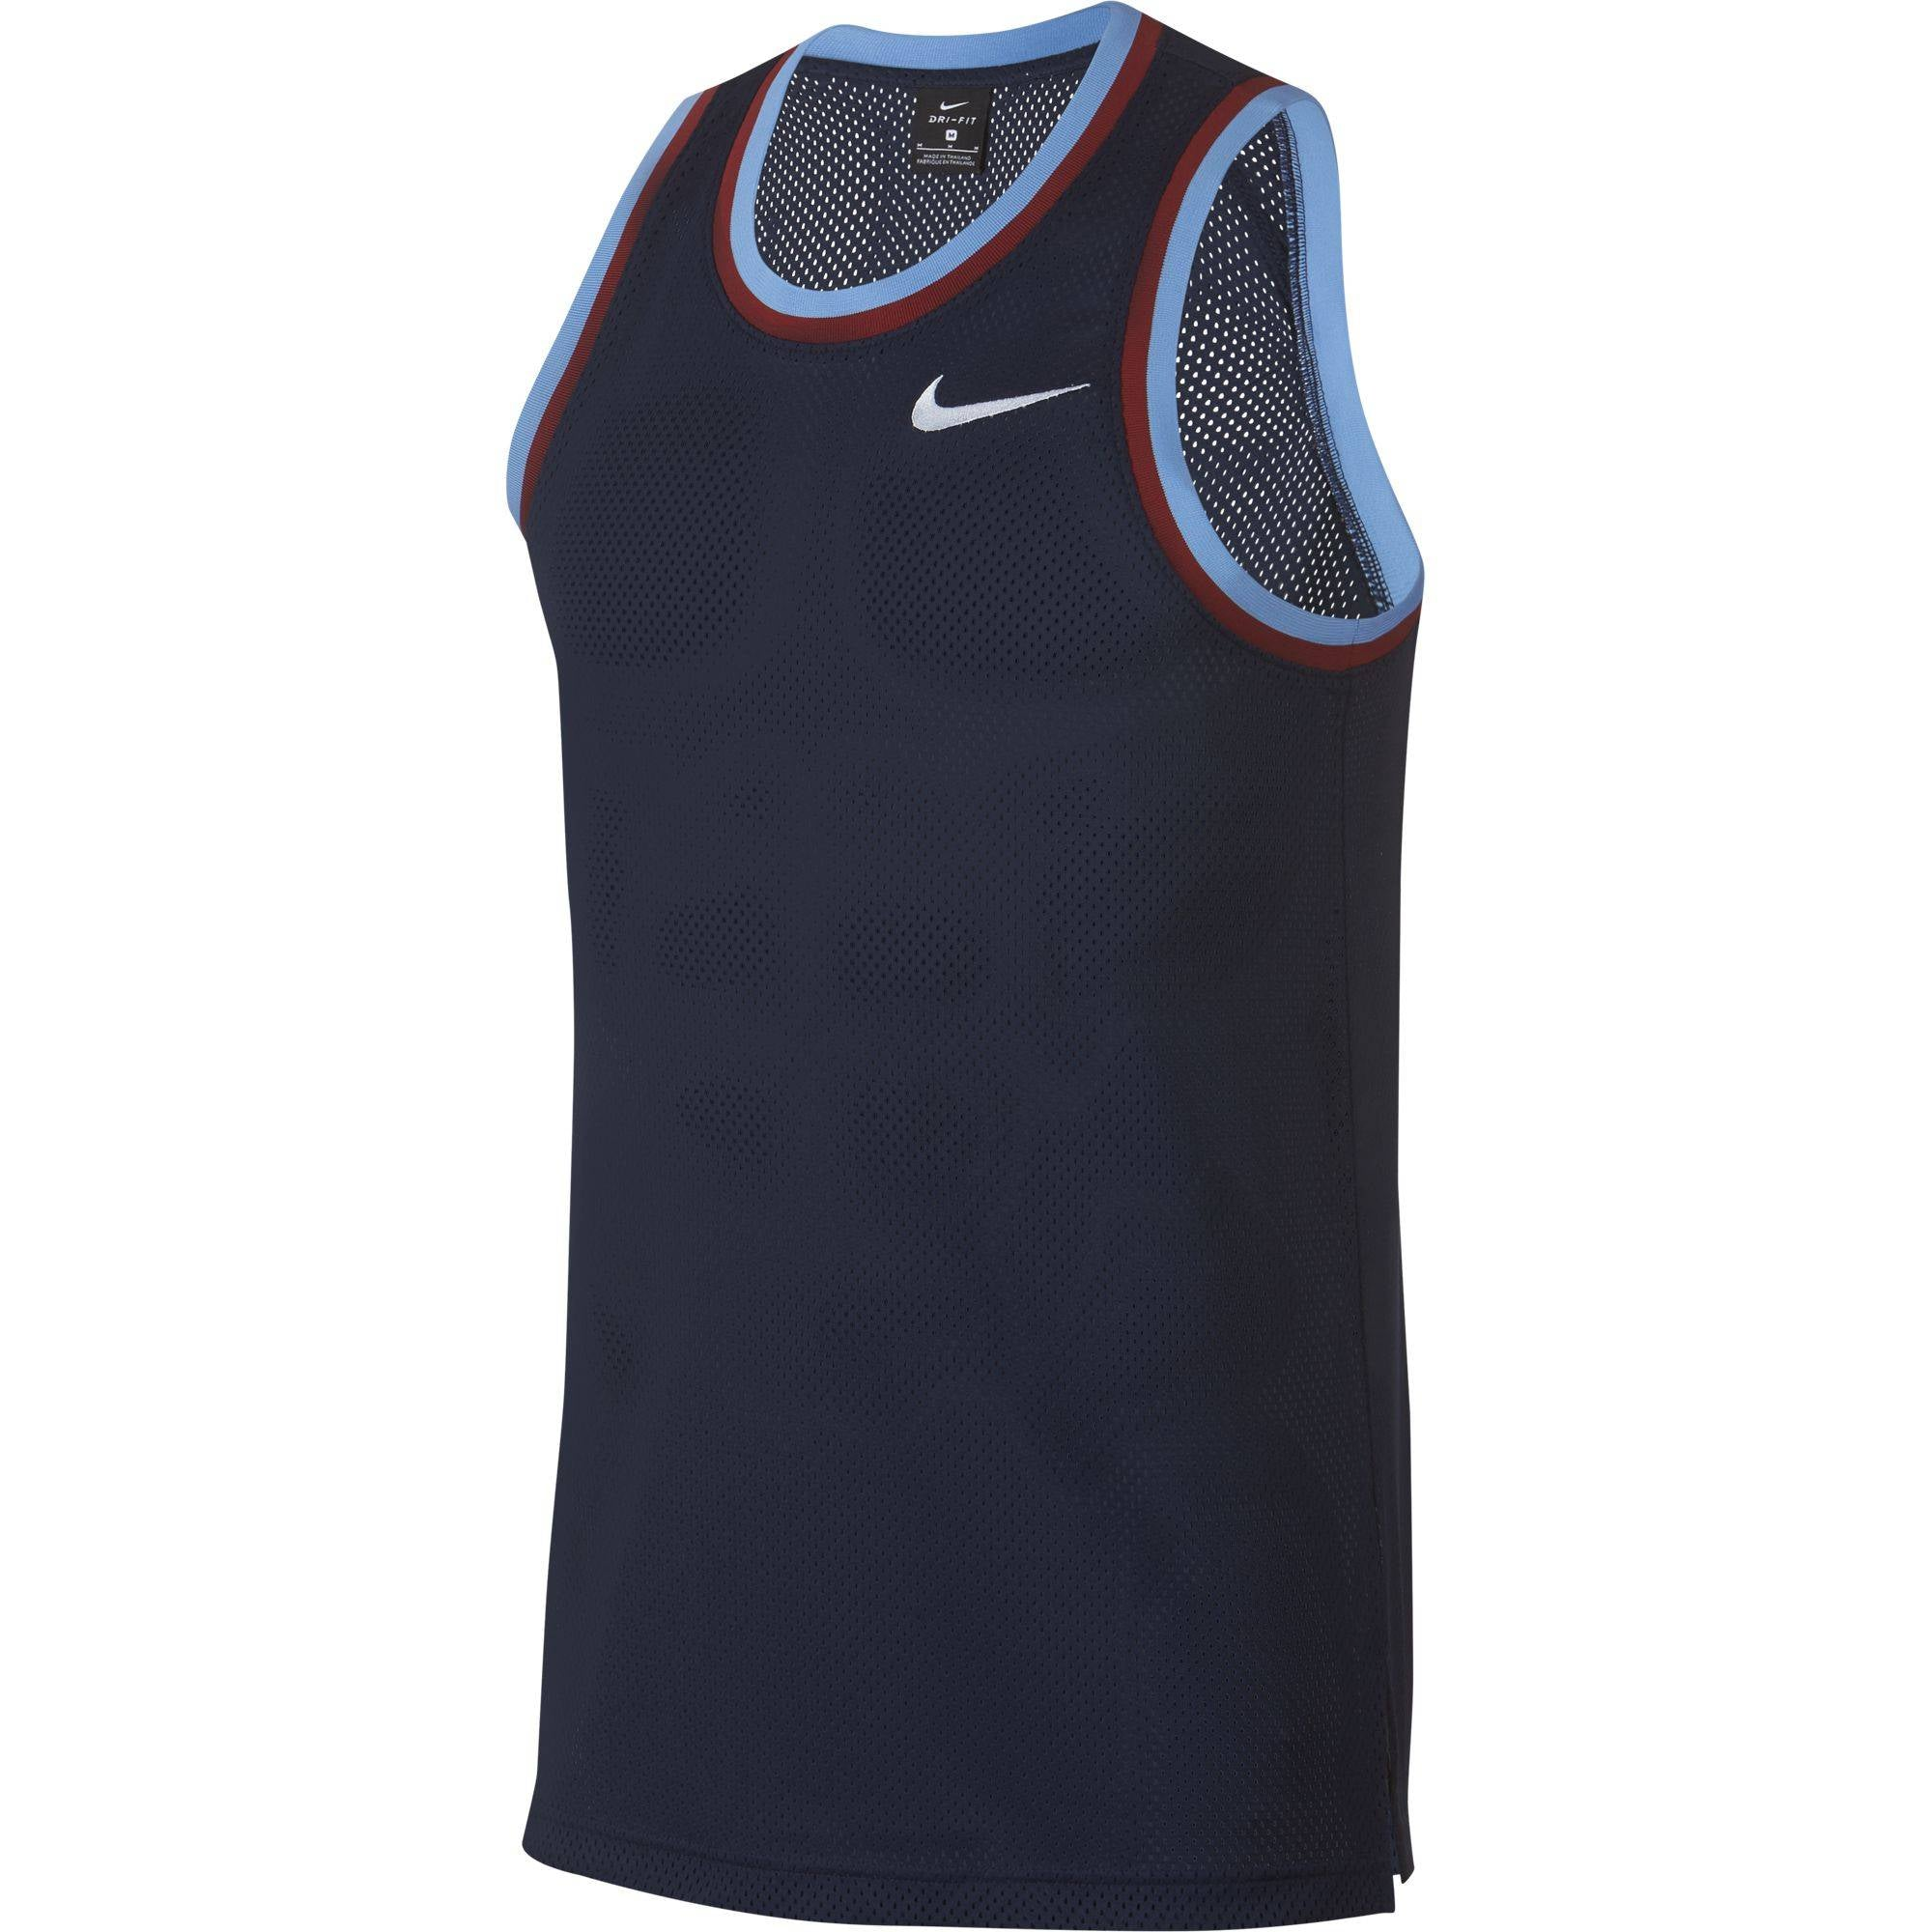 Nike Basketball Dri-fit Classic Jersey - College Navy/White